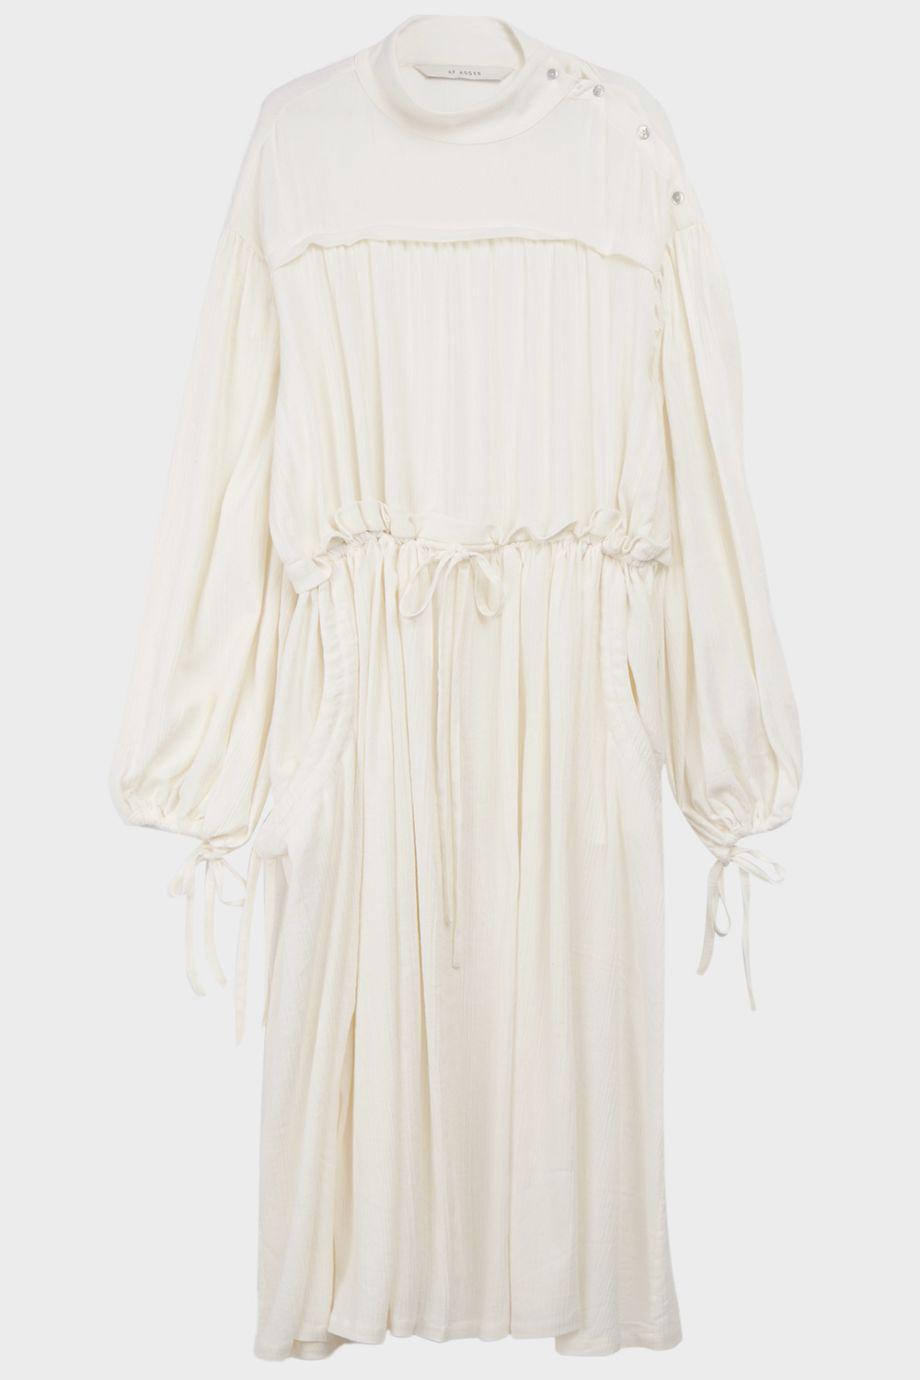 Lyst Af White In Gauze Cotton Agger Dress wOB6fw